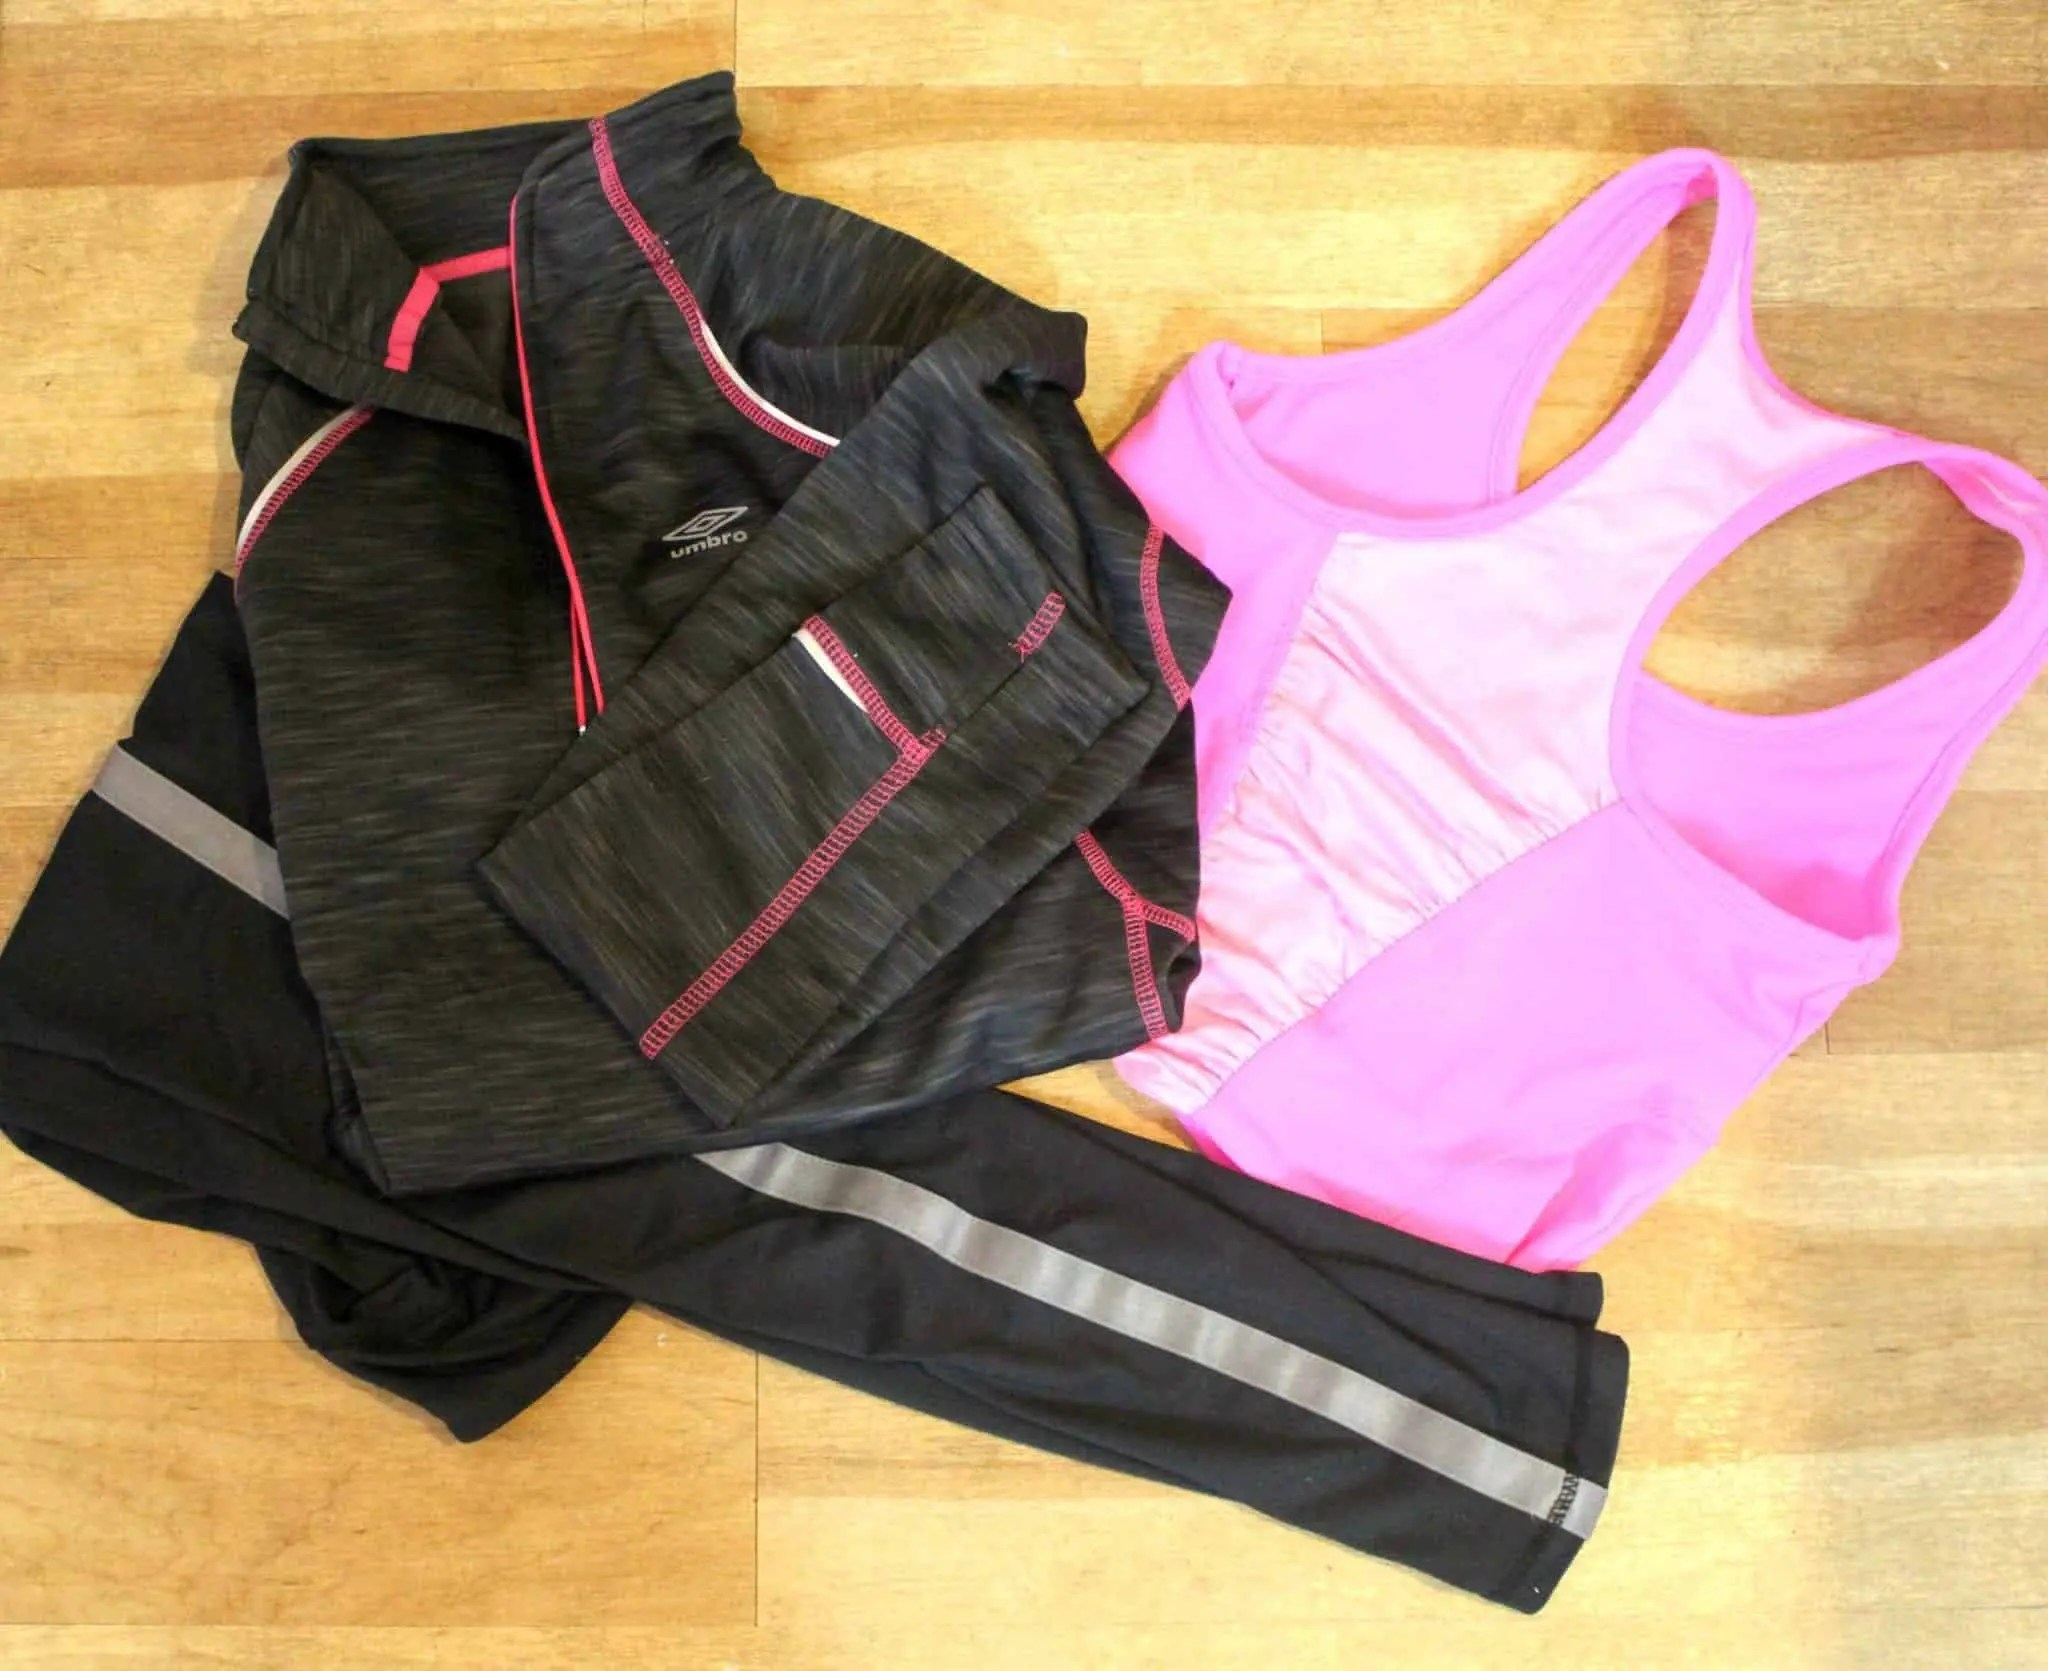 Gordmans Activewear from Treble in the Kitchen